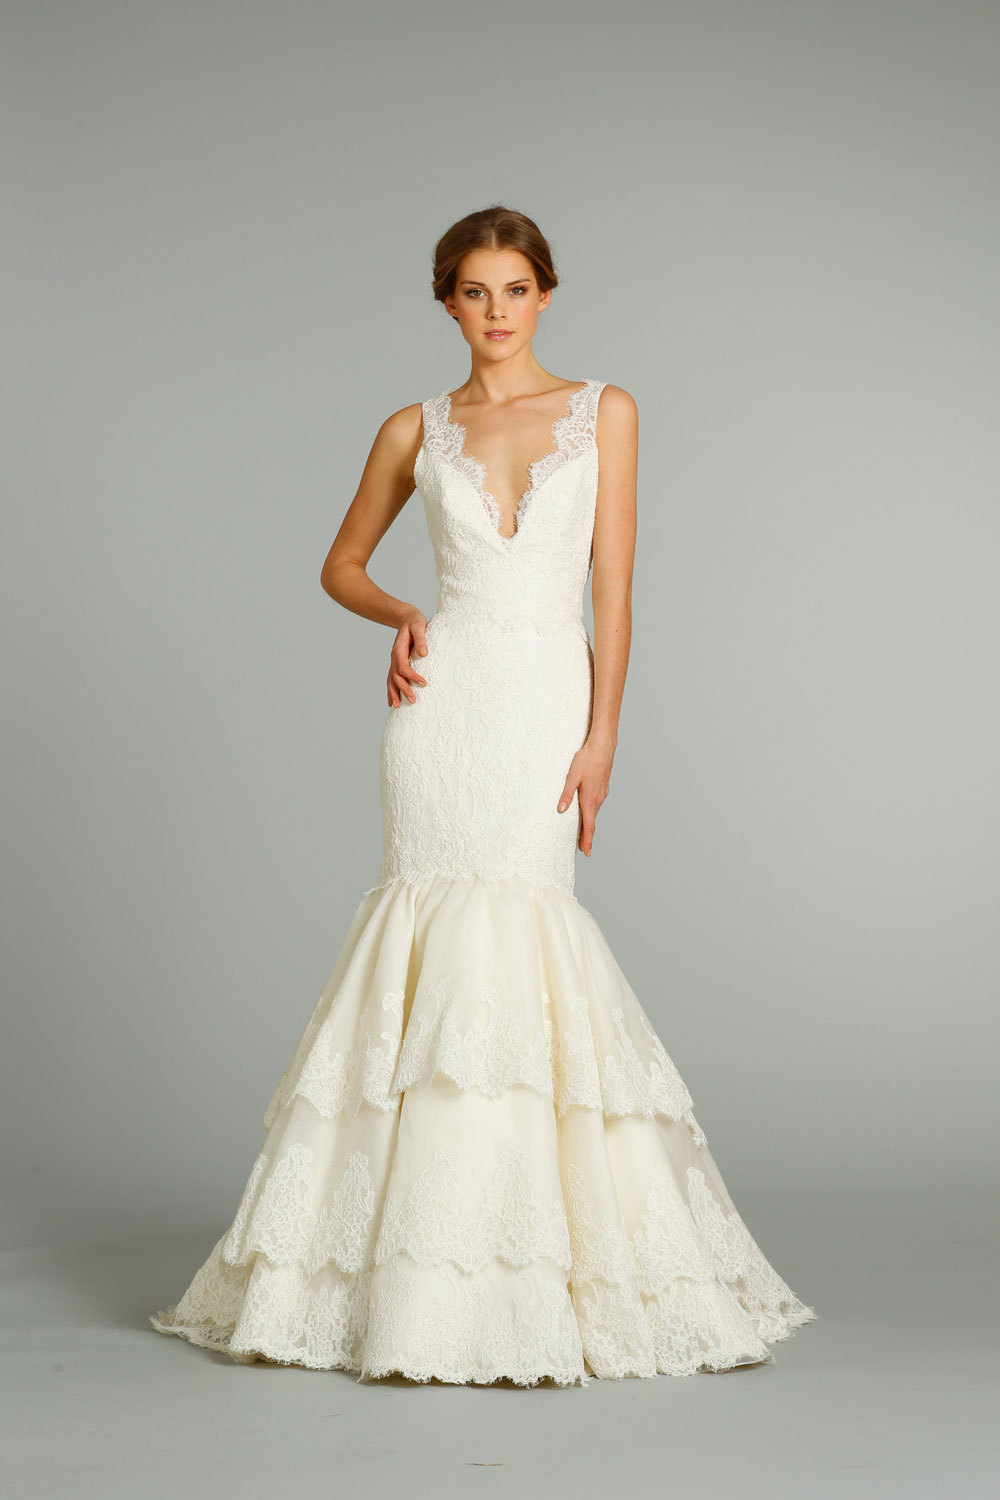 Fall-2012-wedding-dresses-jlm-couture-bridal-jim-hjelm-8259_front.full